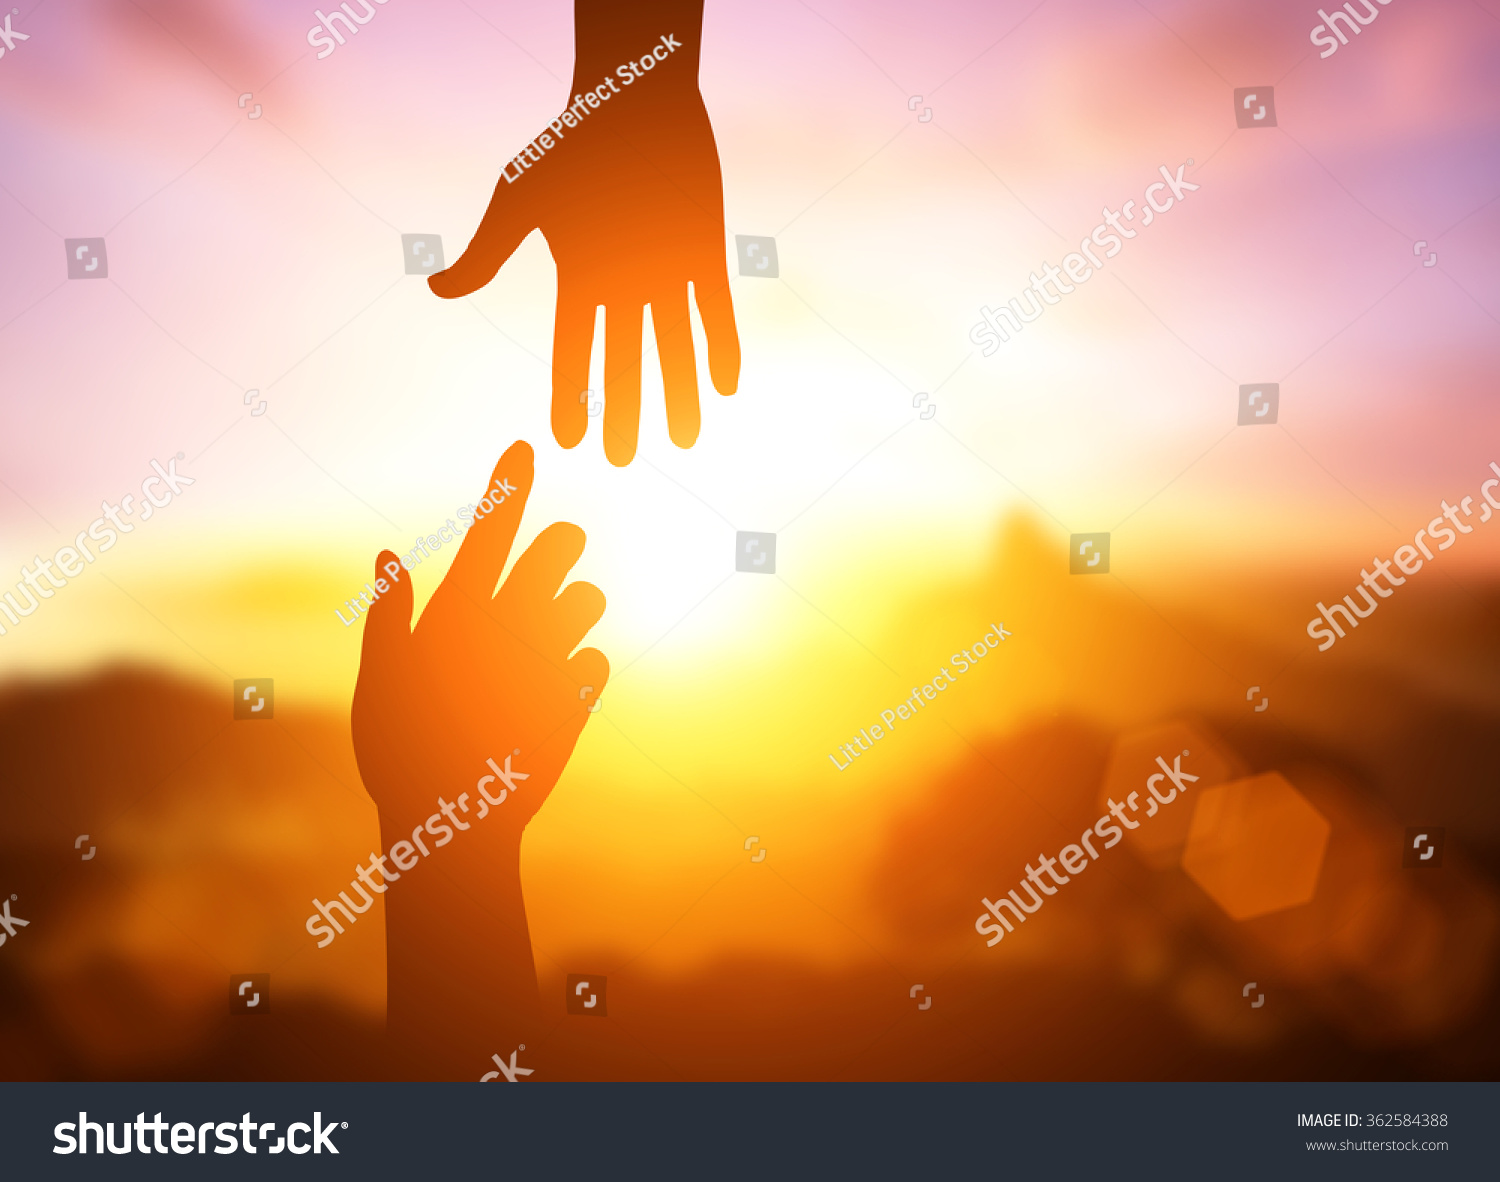 silhouette of helping hand concept and international day of peace.Thank You For Your Support. how can i help you. international day of peace.develop a friendship.please help me. #362584388